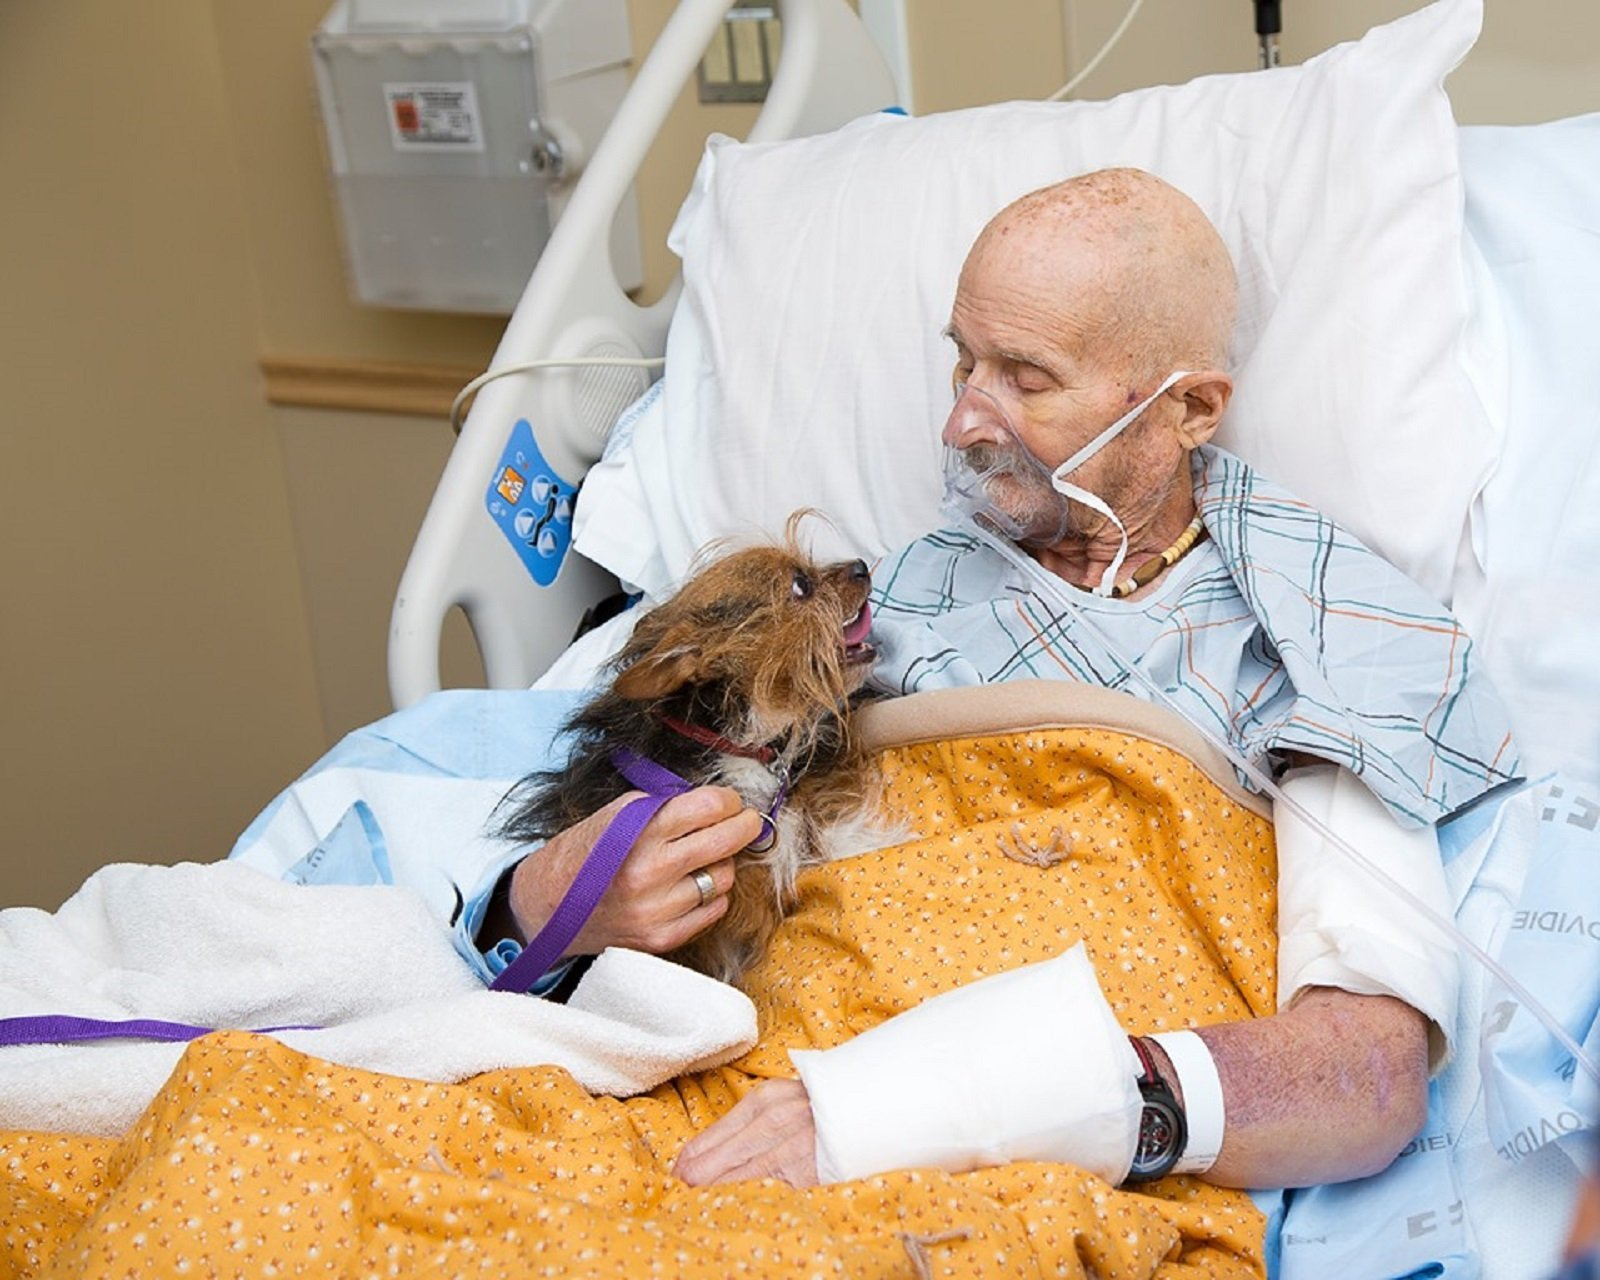 A Vietnam veteran in hospice care got to see his beloved dog for the last time